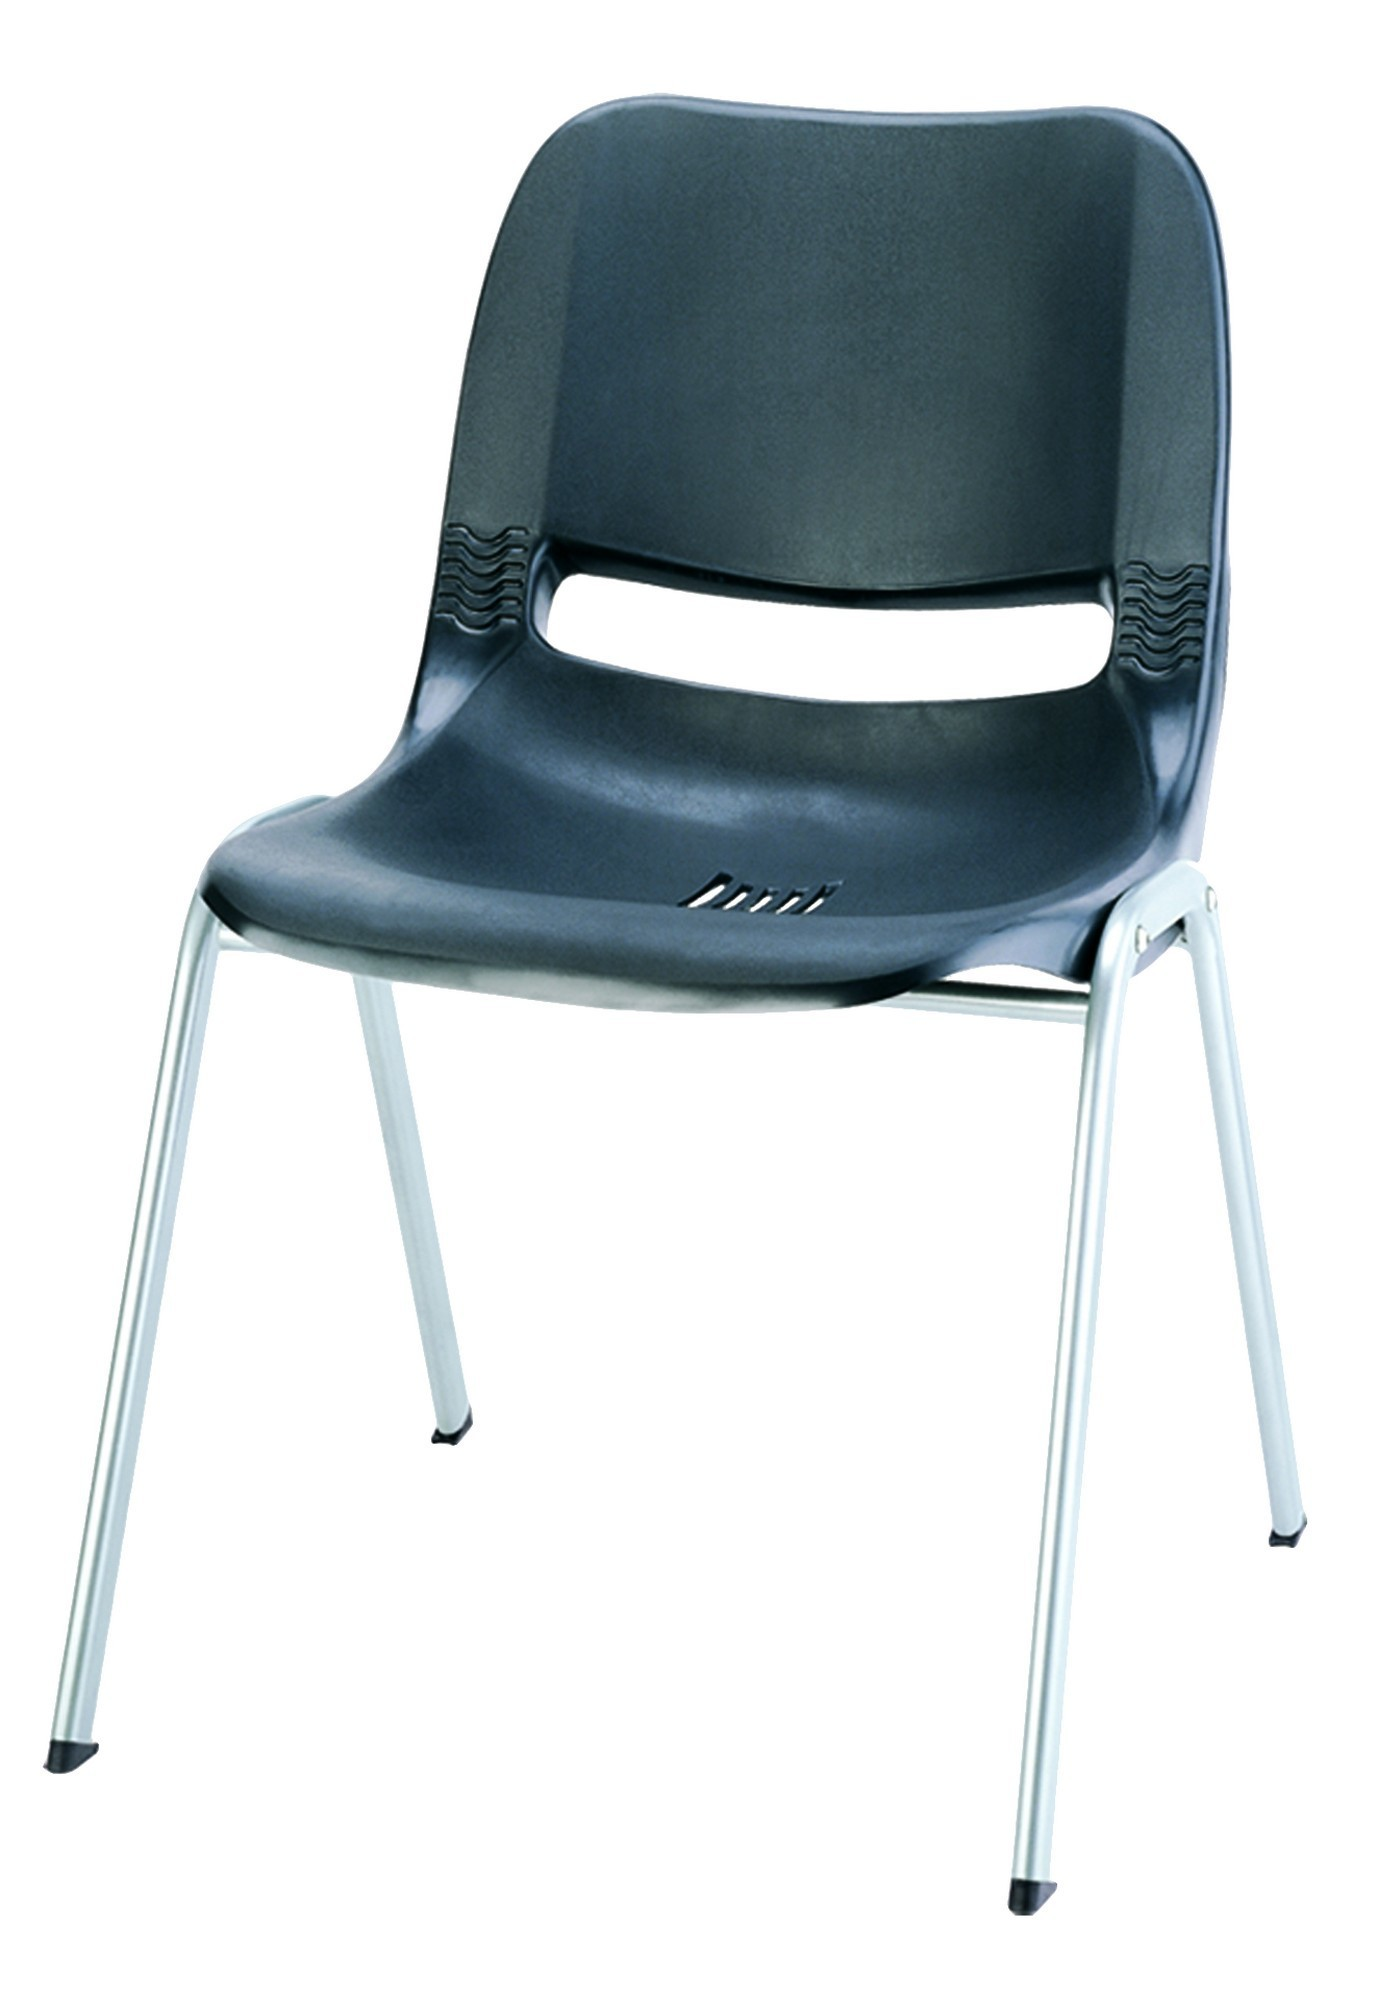 Tazz Stacking Chair In Black